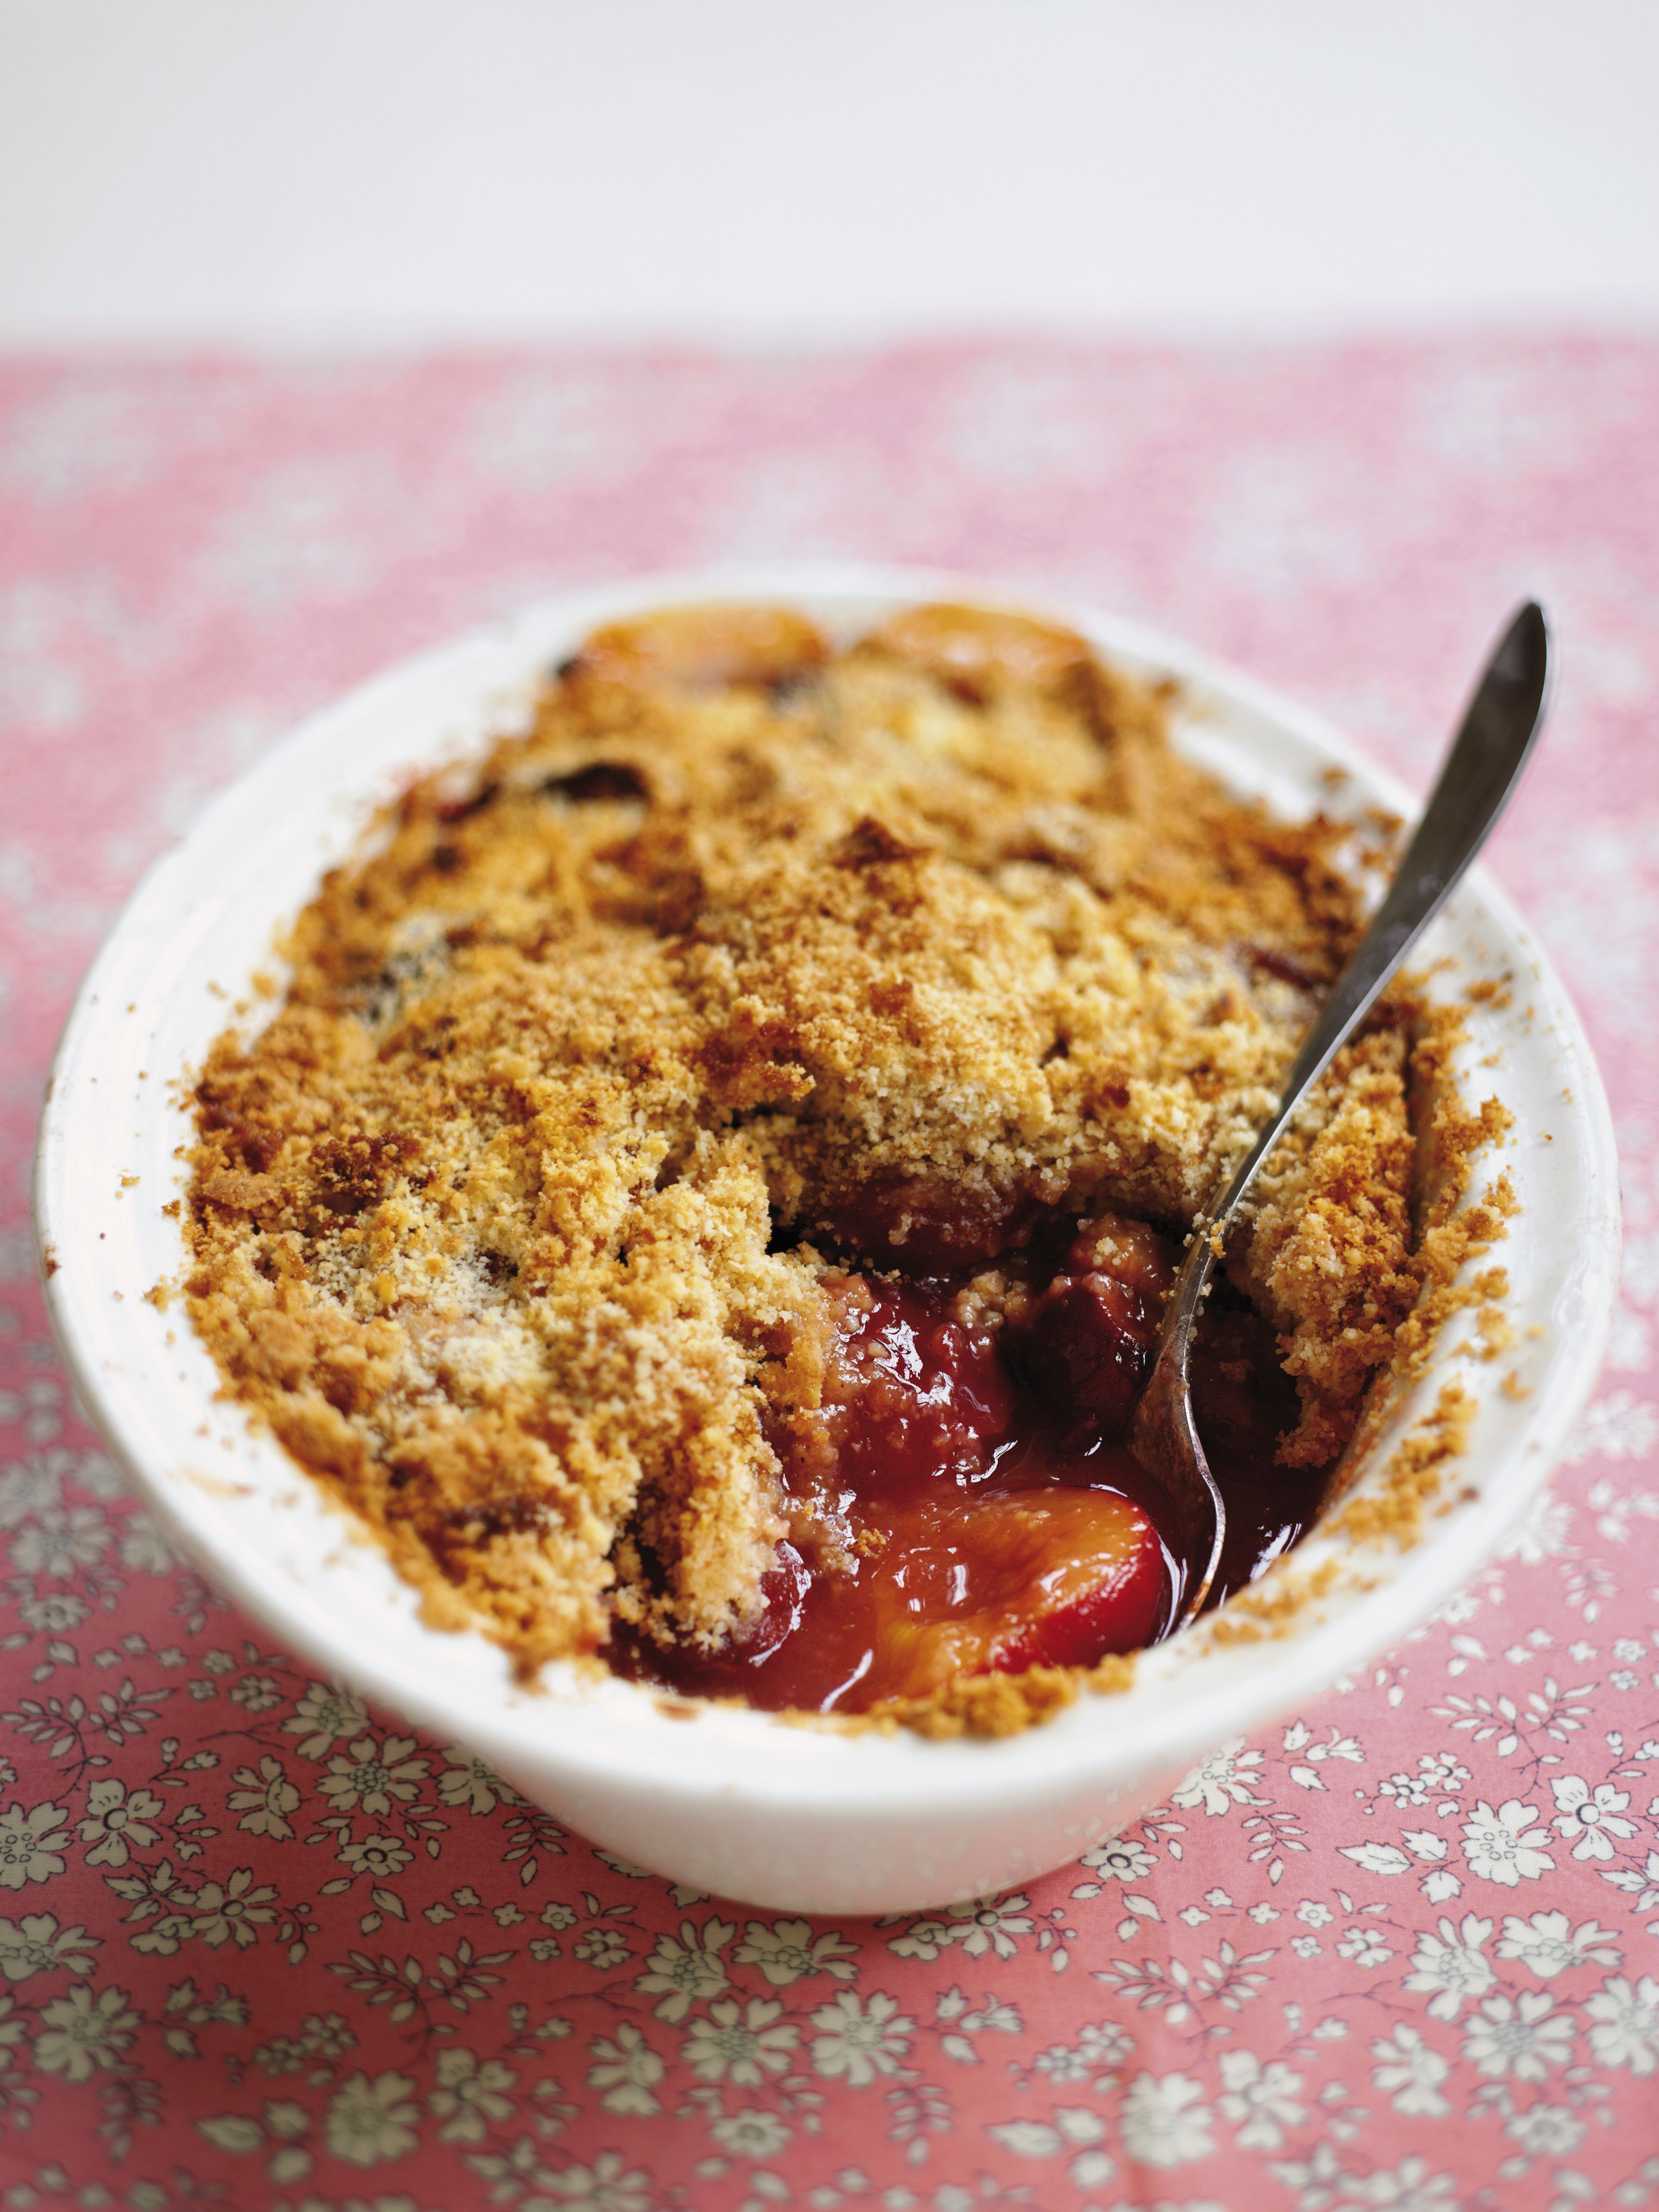 Fresh Plum Crumble With Spiced Crumb Topping